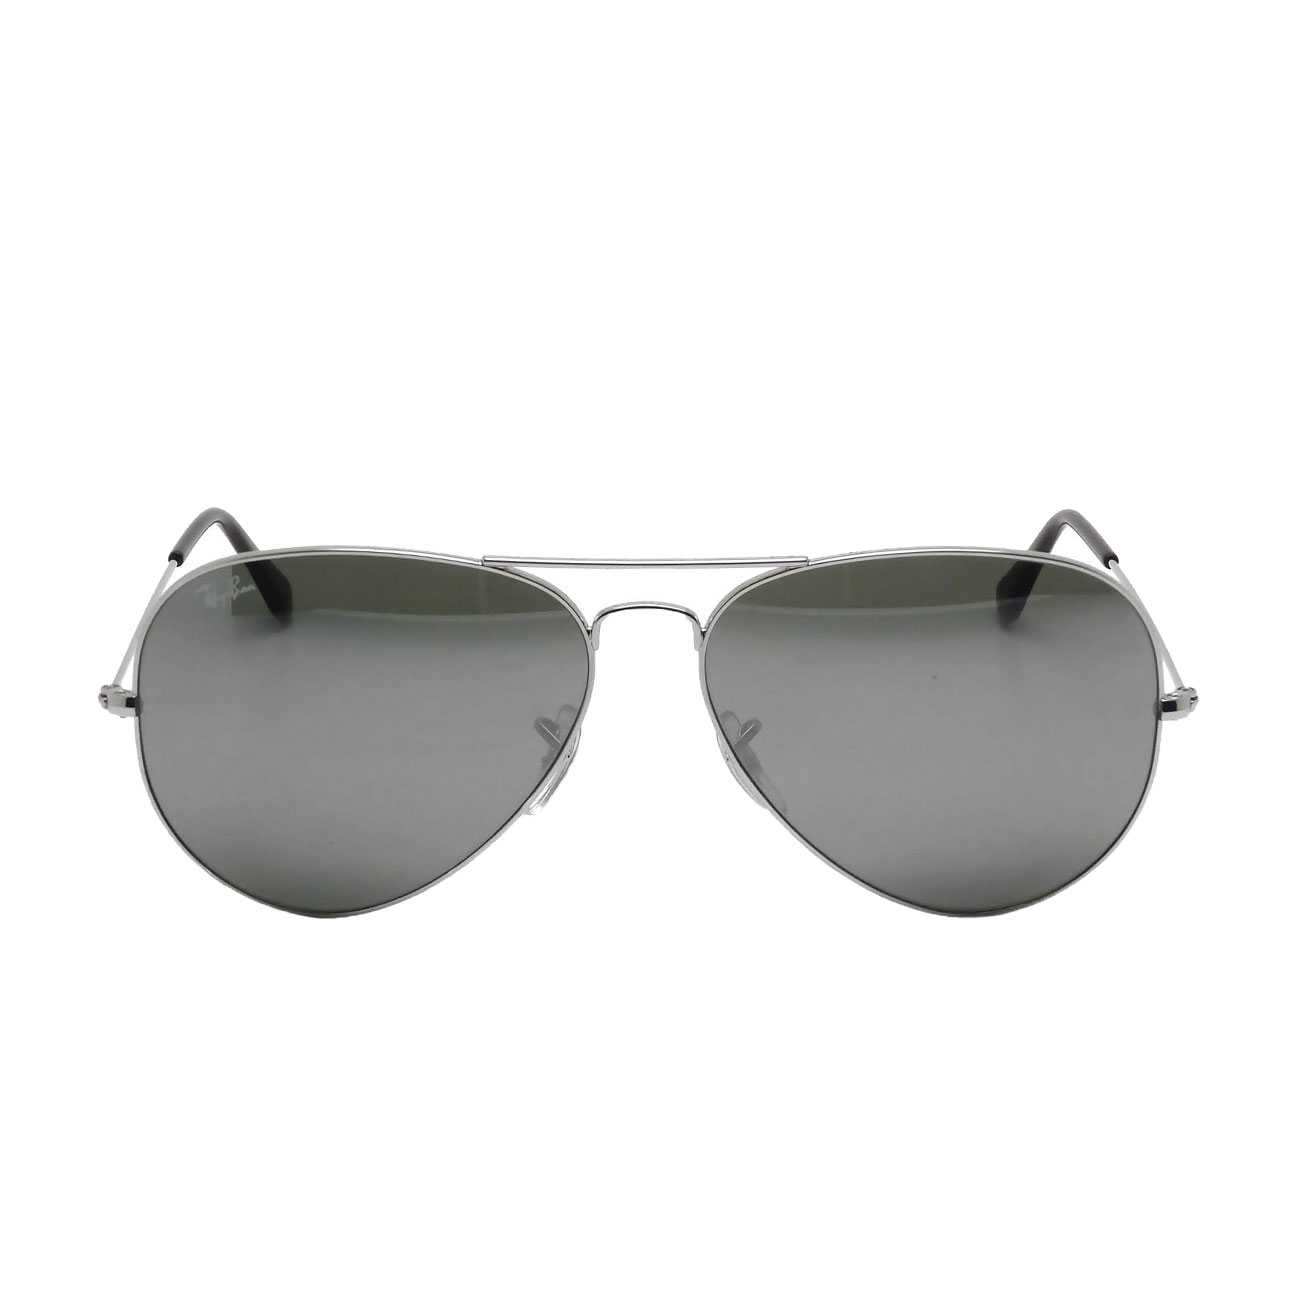 AVIATOR RB3025 003 40 62